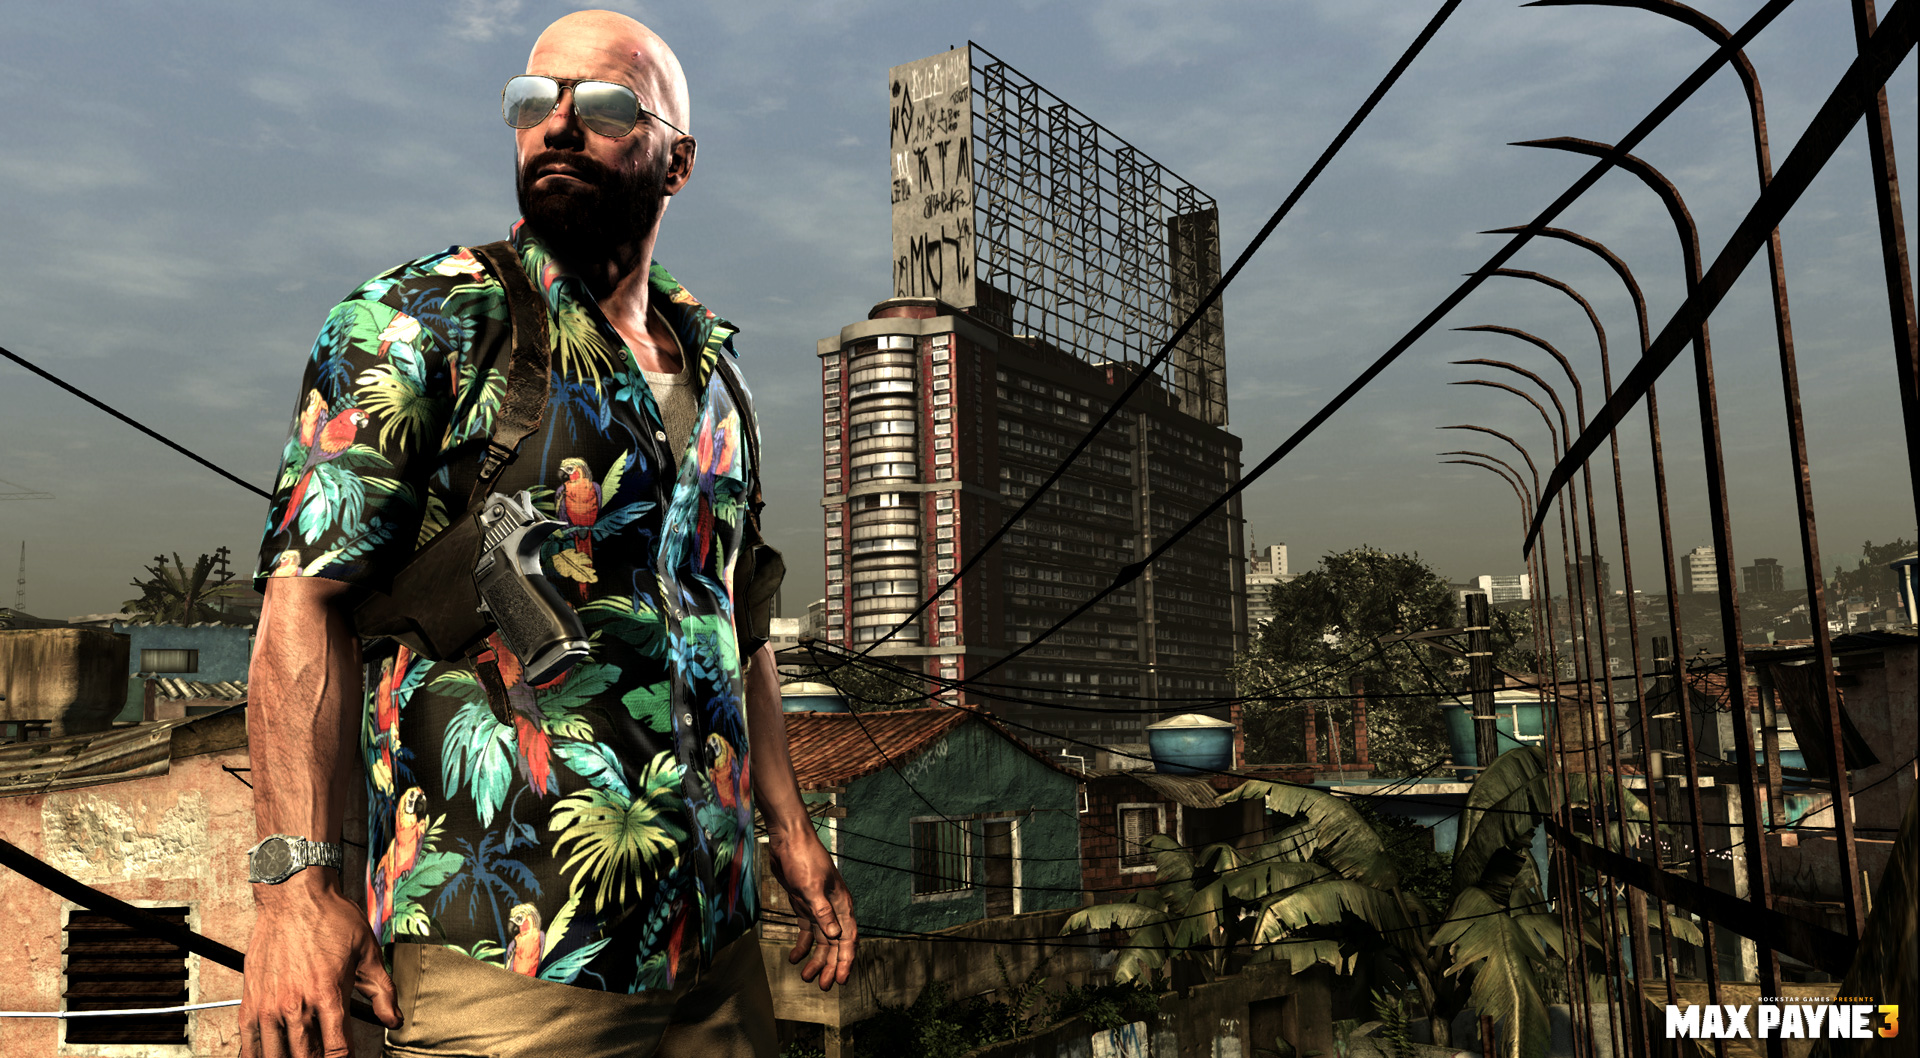 Most Viewed Max Payne 3 Wallpapers 4k Wallpapers